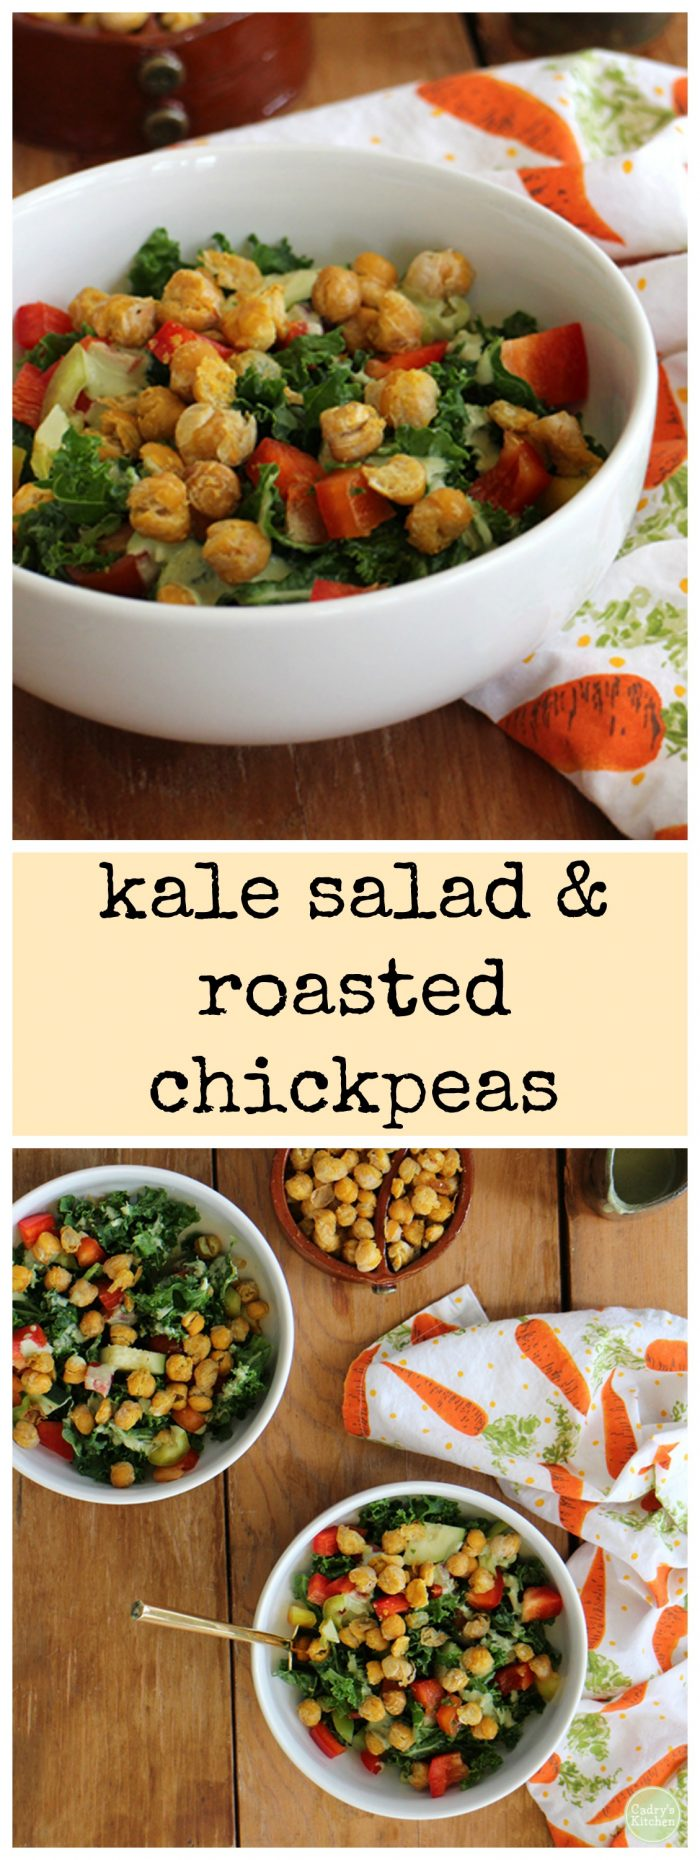 Raw kale salad with roasted chickpeas & creamy cashew dressing - Vegan & gluten-free | cadryskitchen.com